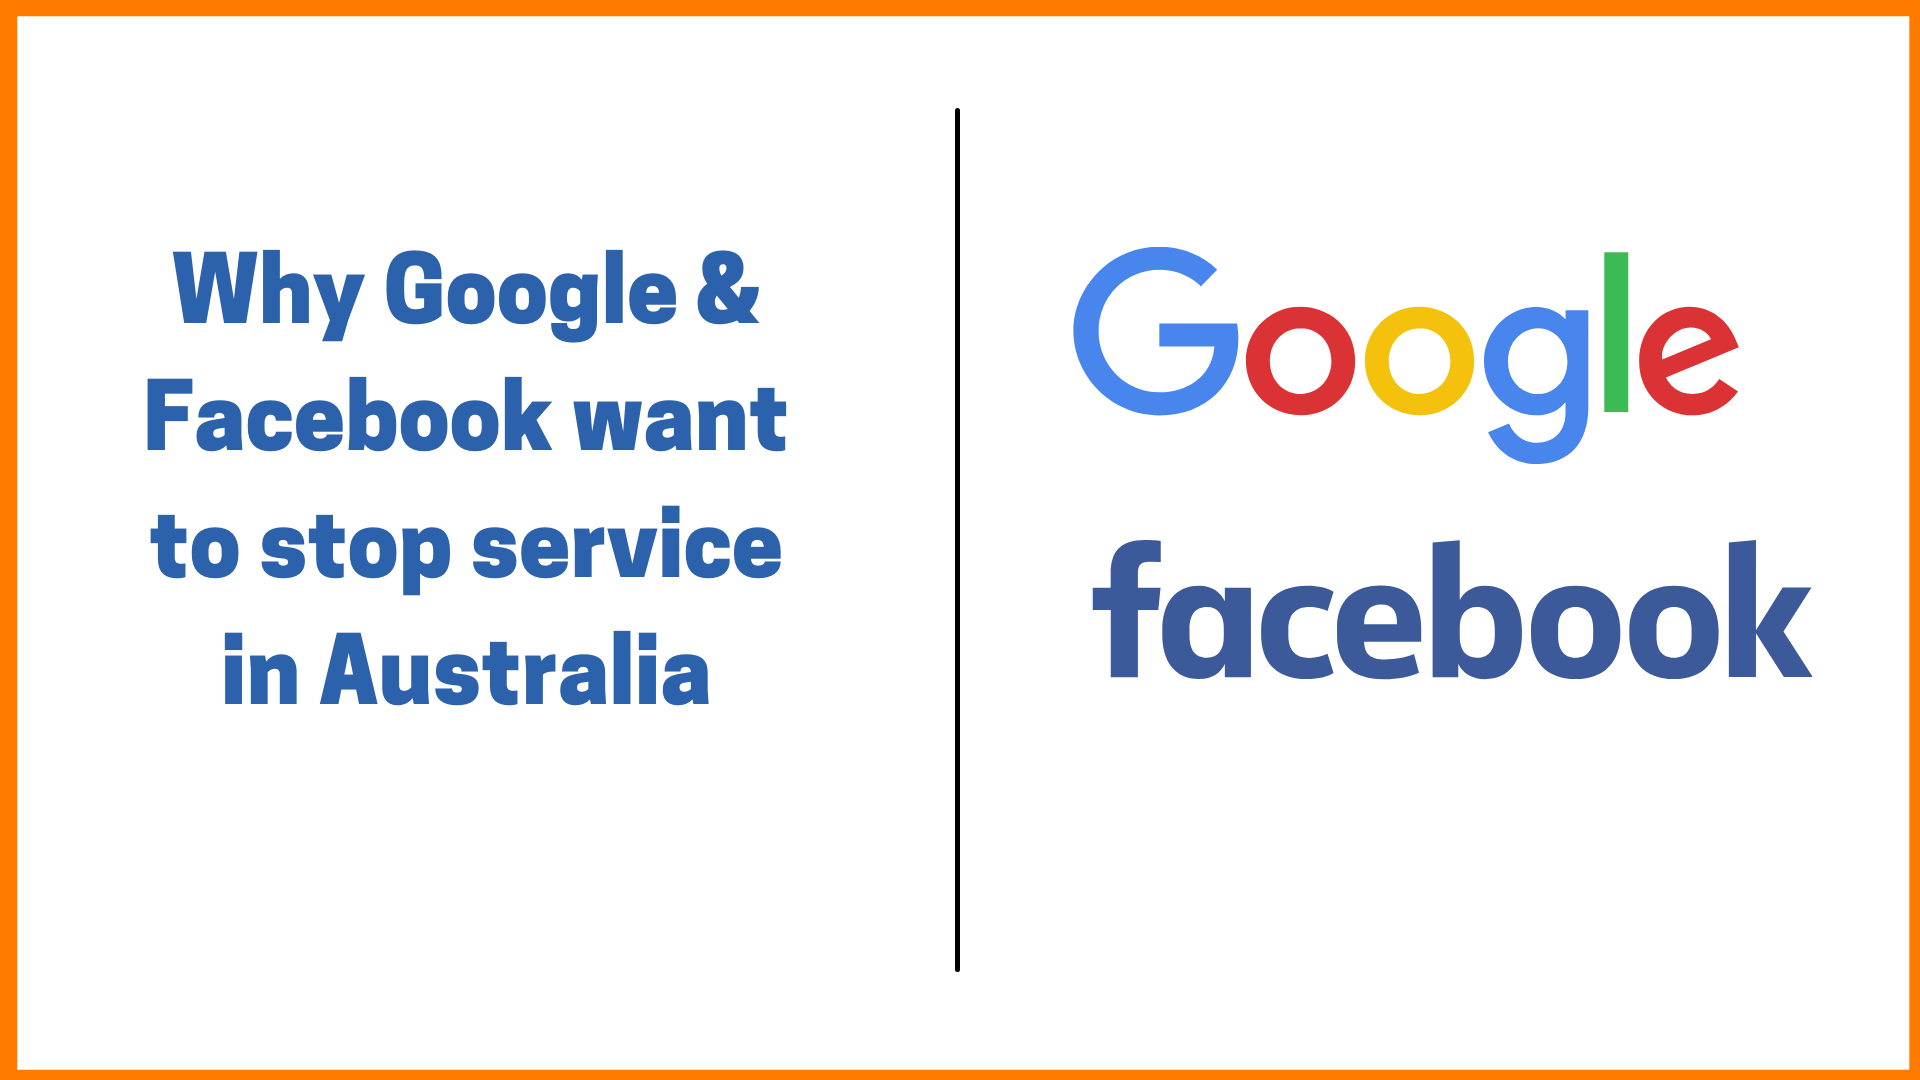 Why Google & Facebook want to stop service in Australia